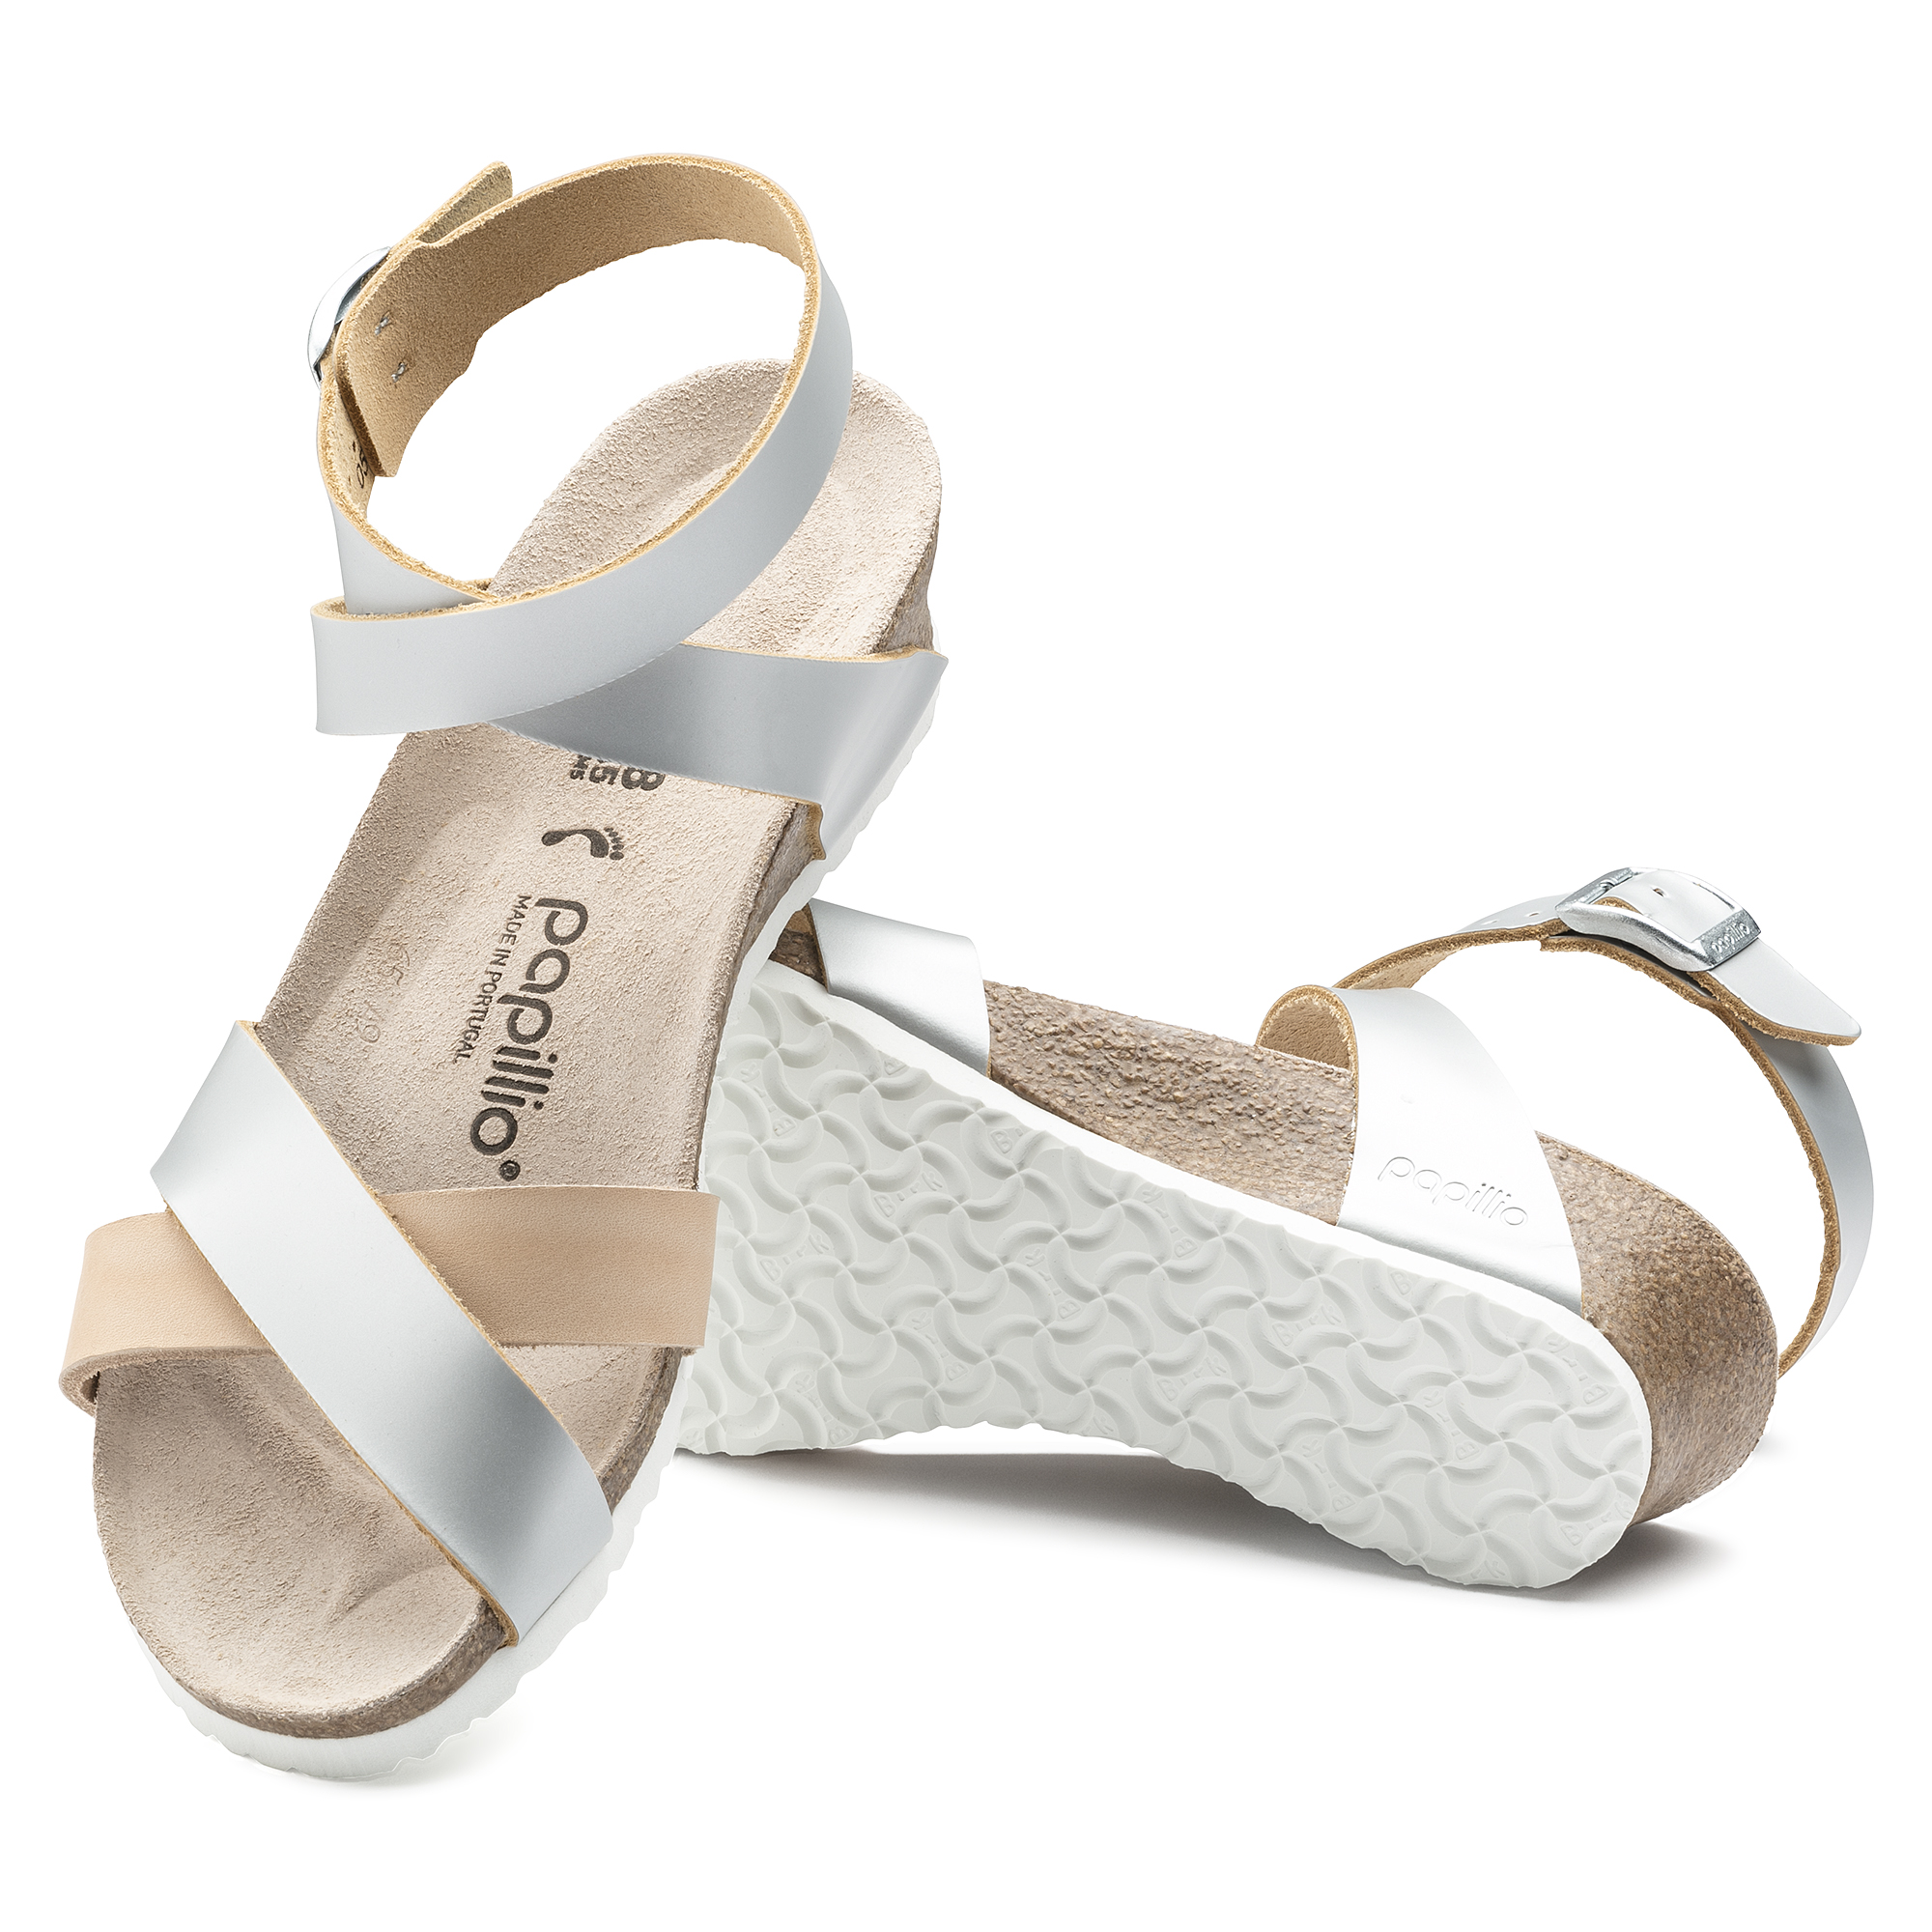 7ec084f1c72 ... Lola Natural Leather Frosted Metallic Silver ...